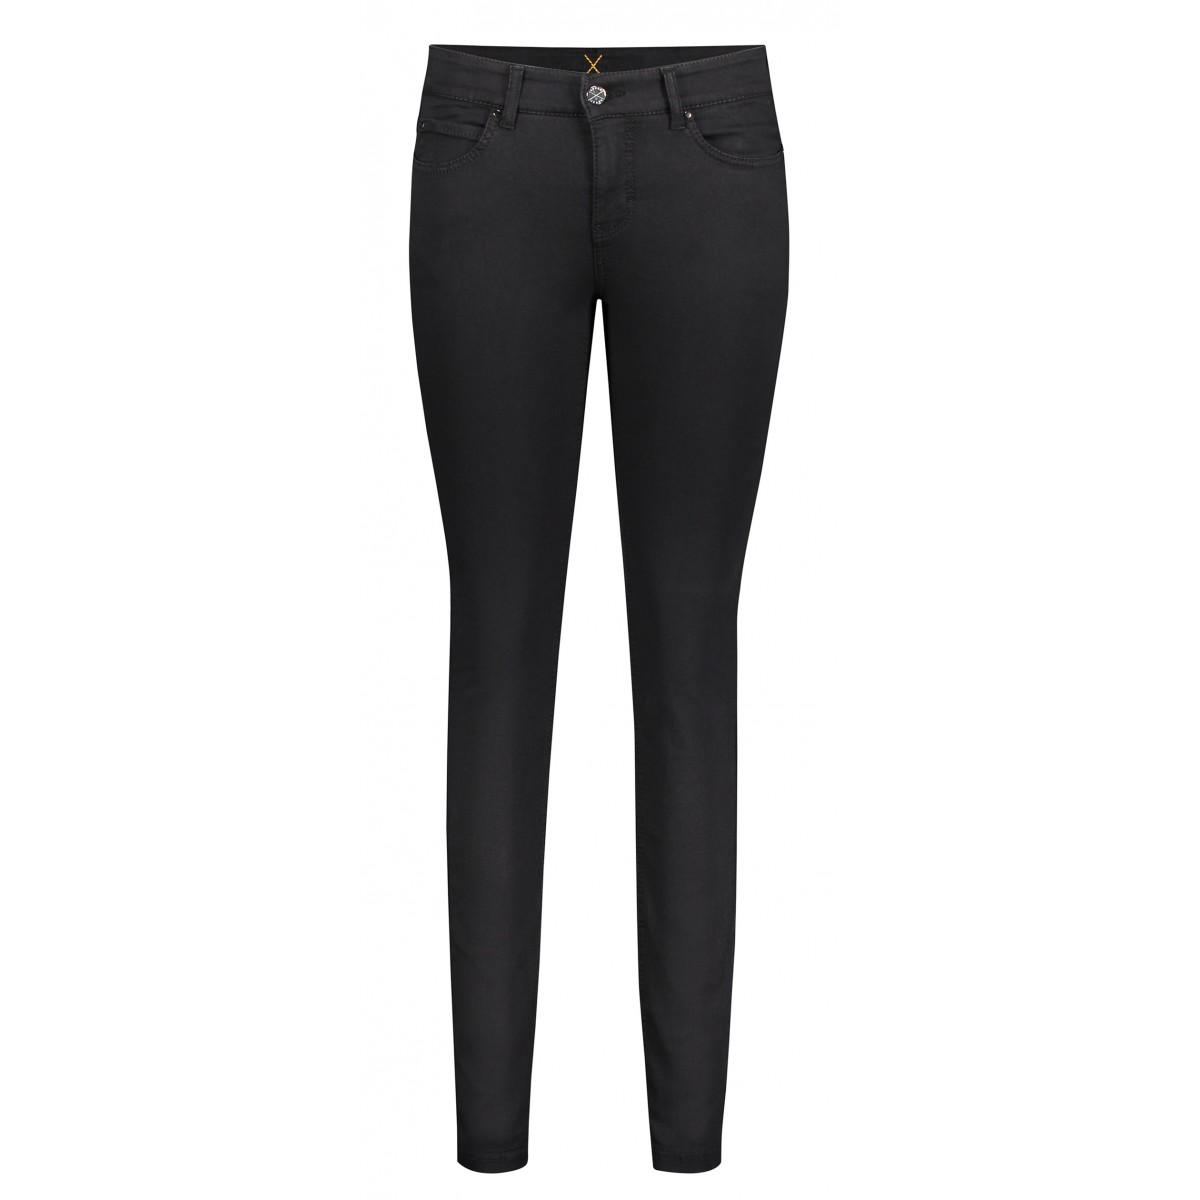 MAC Jeans Dream Skinny Black-black 5402 0355L D999-31